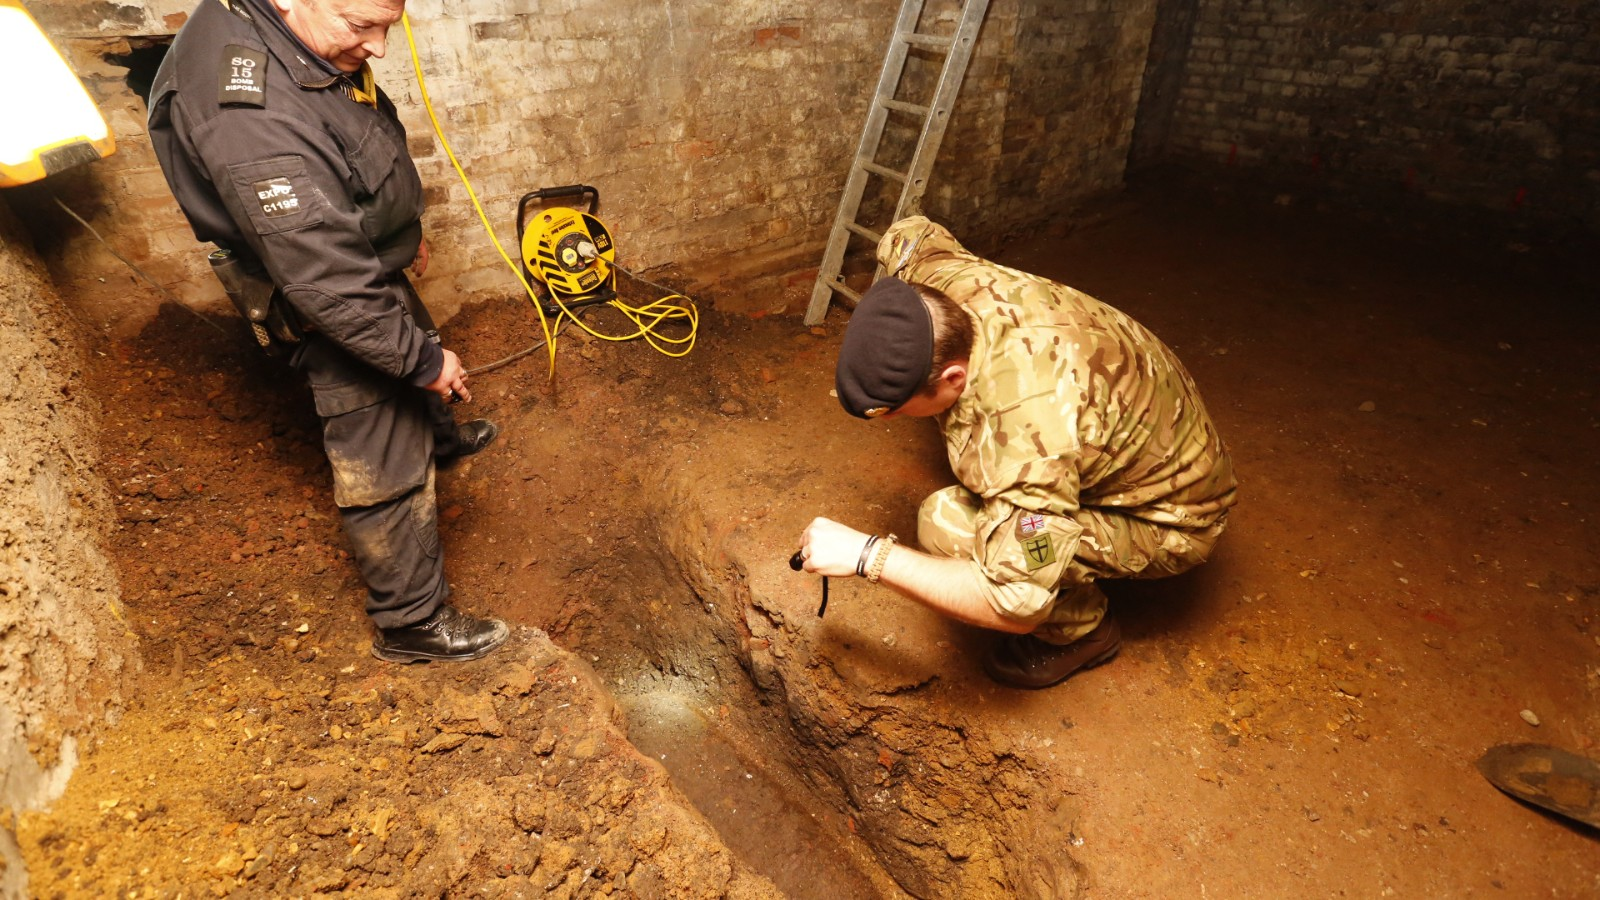 Experts defuse unexploded World War II bomb in London